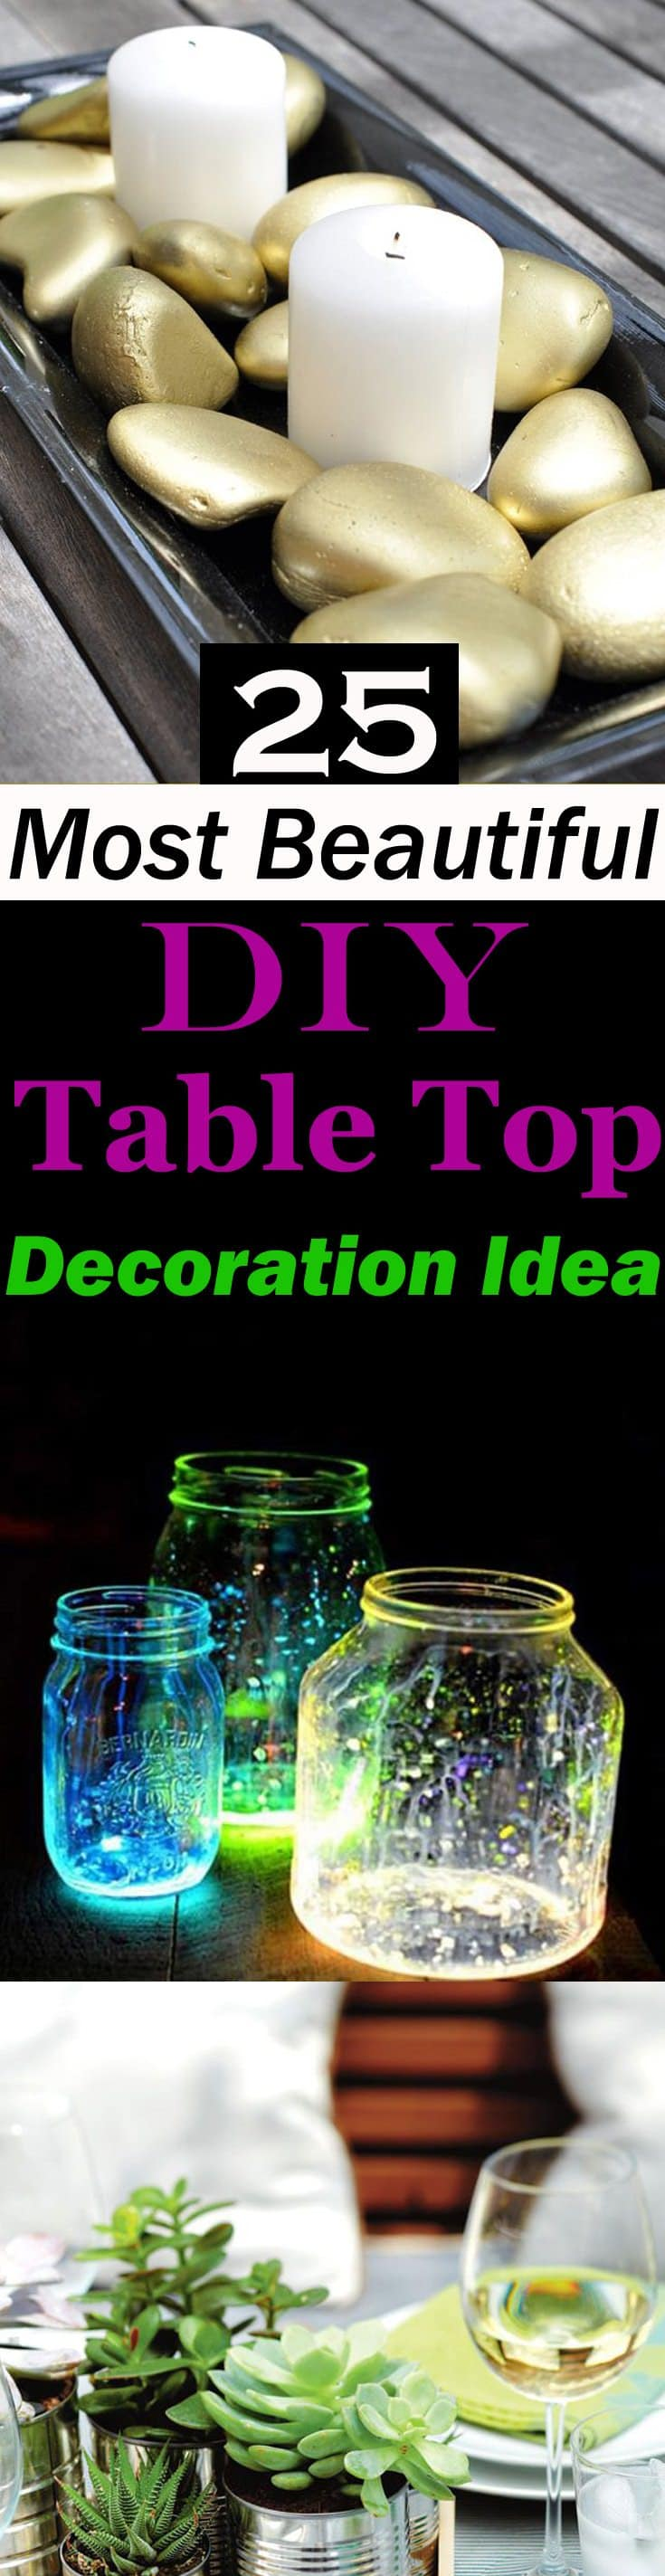 25 Diy Tabletop Decoration Ideas That You Ll Love To Follow Easy And Exciting